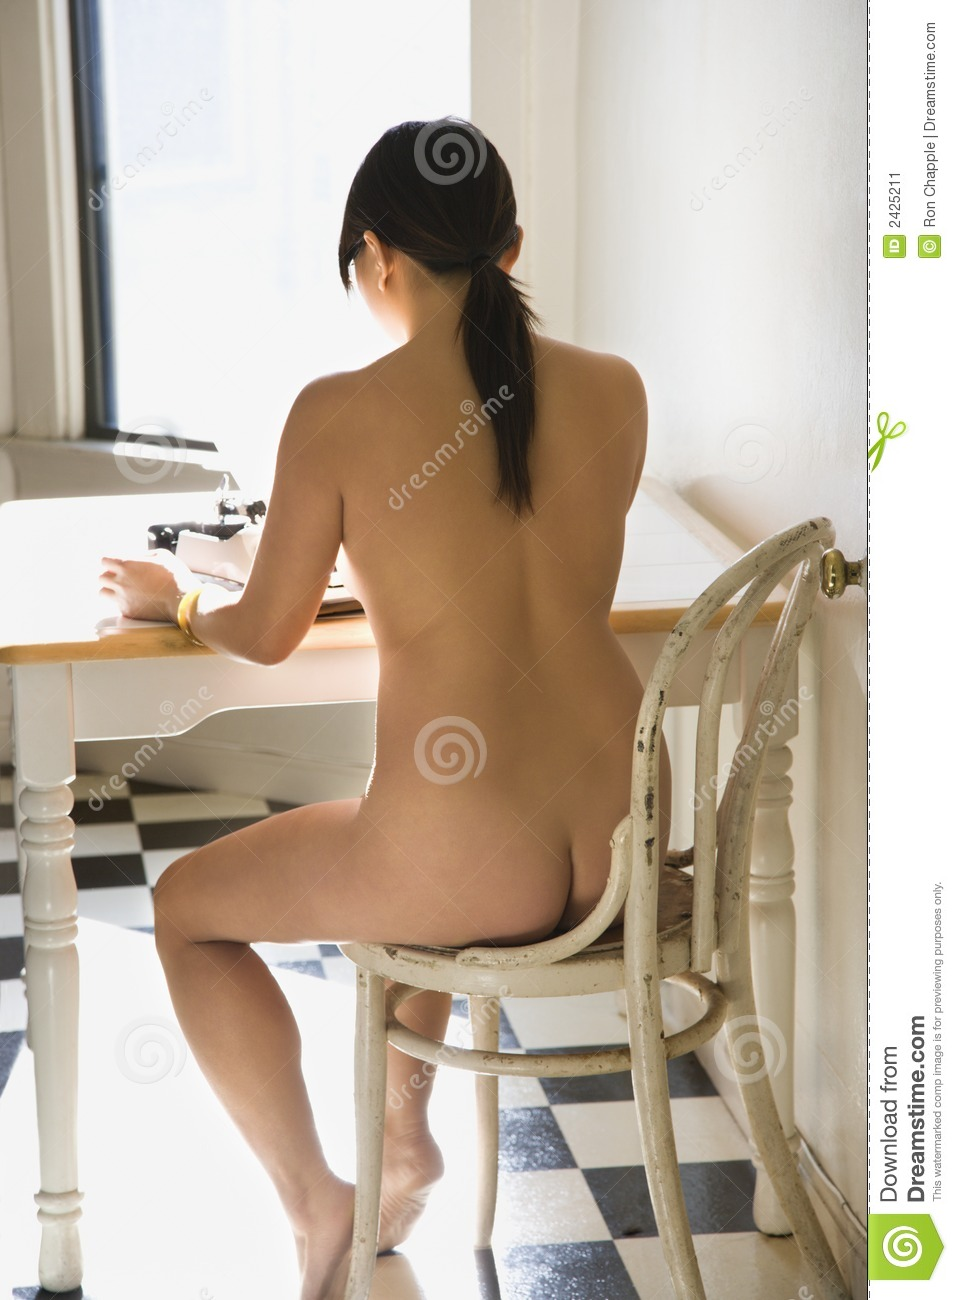 Comfort! something smiling nude woman from back